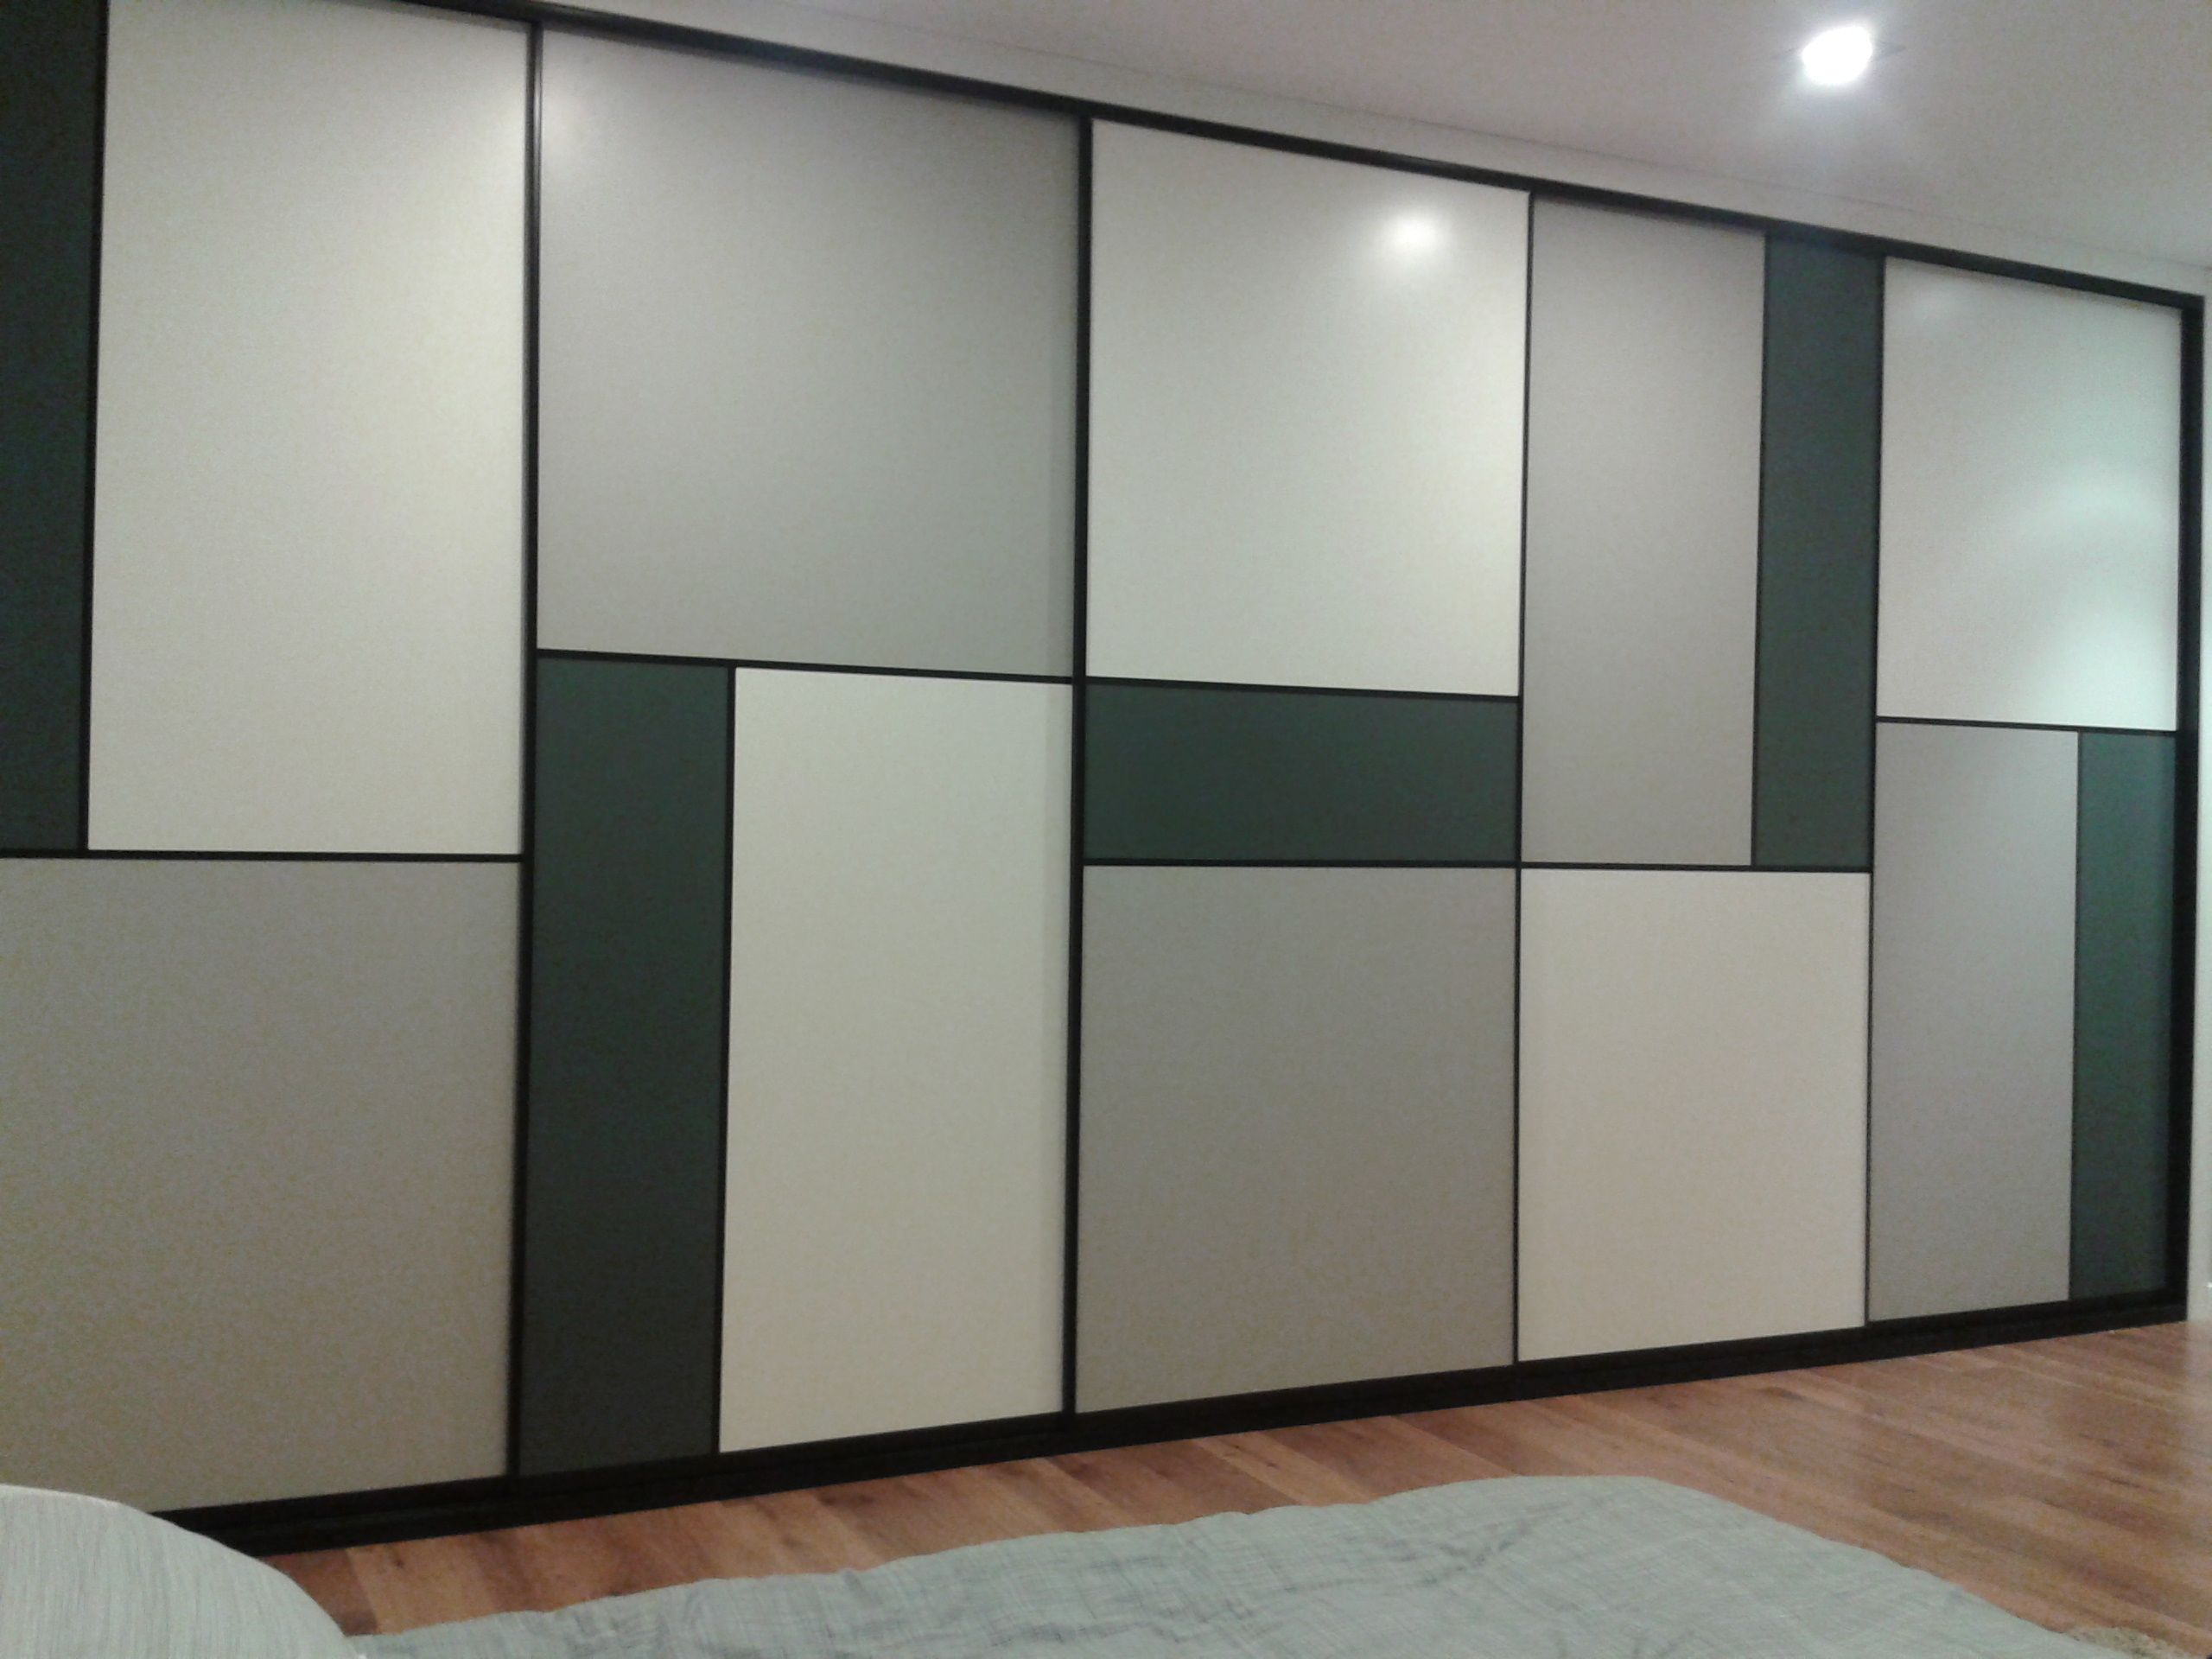 Frente Corredera Lacado En Tonos Grises Wardrobe Door Designs Wardrobe Doors Sliding Wardrobe Designs